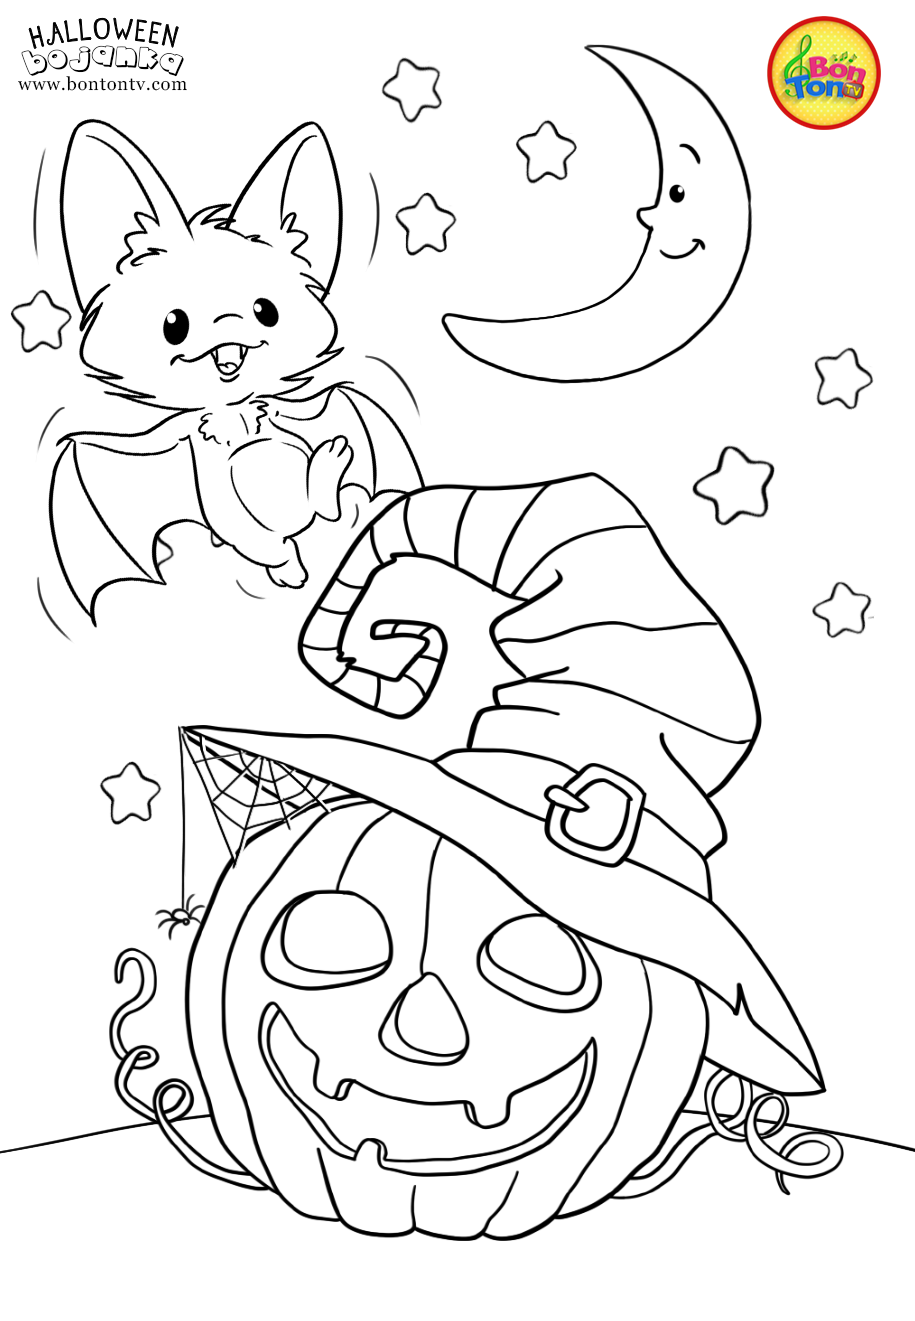 Halloween Coloring Pages For Kids Free Preschool Printables Noa Vjeĺˇtica Bo In 2020 Halloween Coloring Book Scary Halloween Crafts Free Halloween Coloring Pages